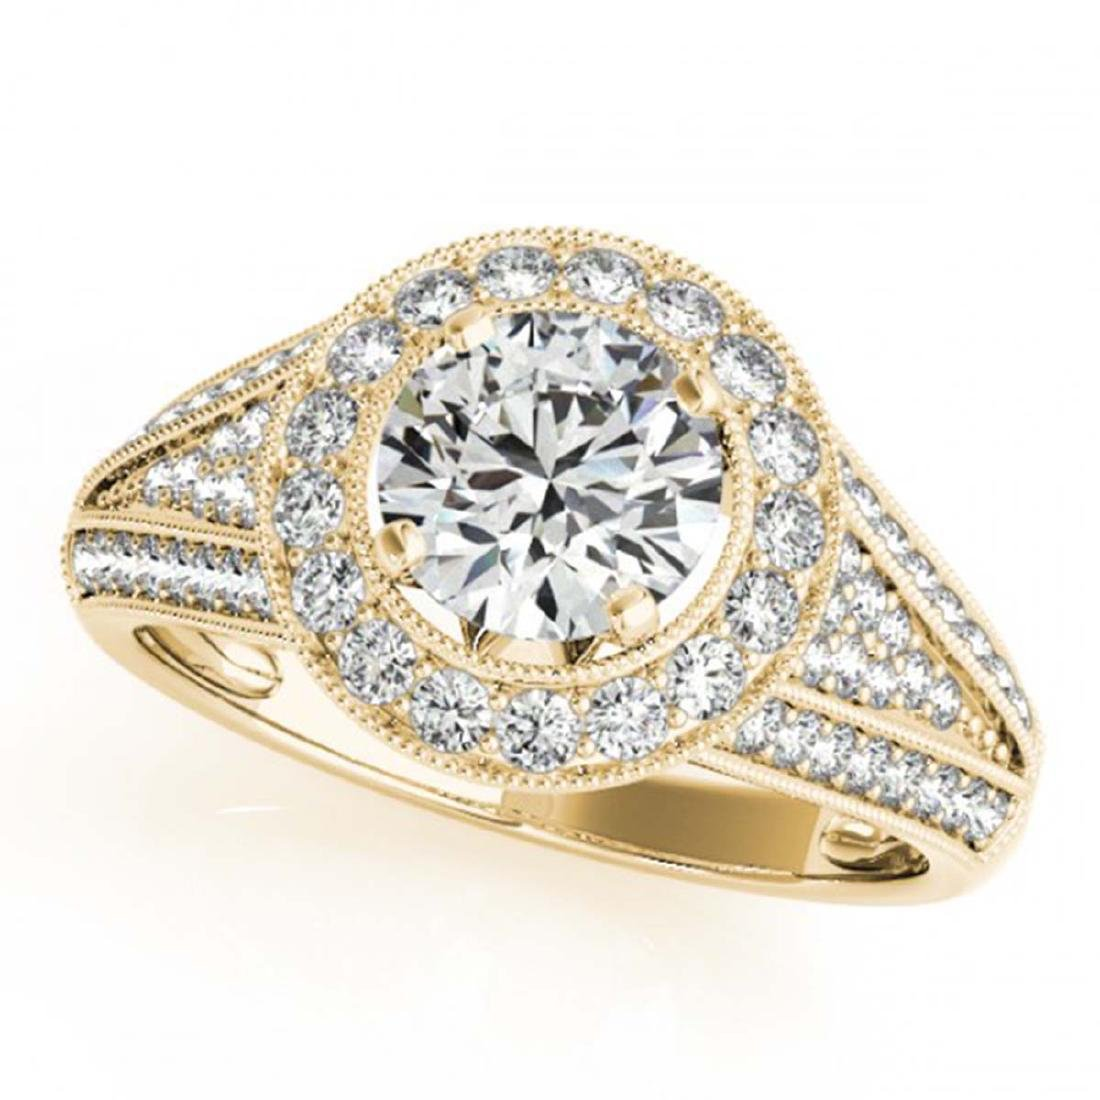 1.70 ctw VS/SI Diamond Halo Ring 18K Yellow Gold -